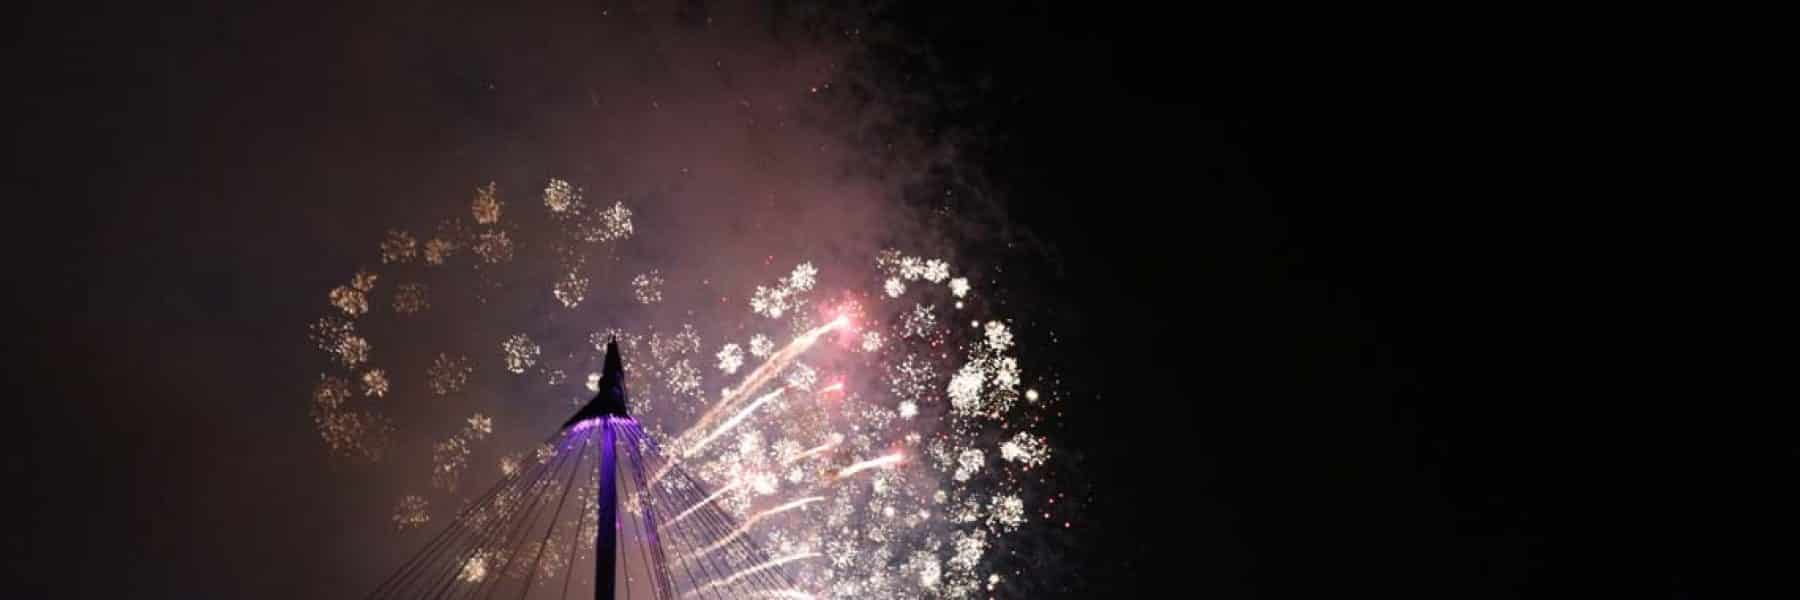 New Year's Eve Cruises, New Year's Eve Fireworks | Viscount Cruises